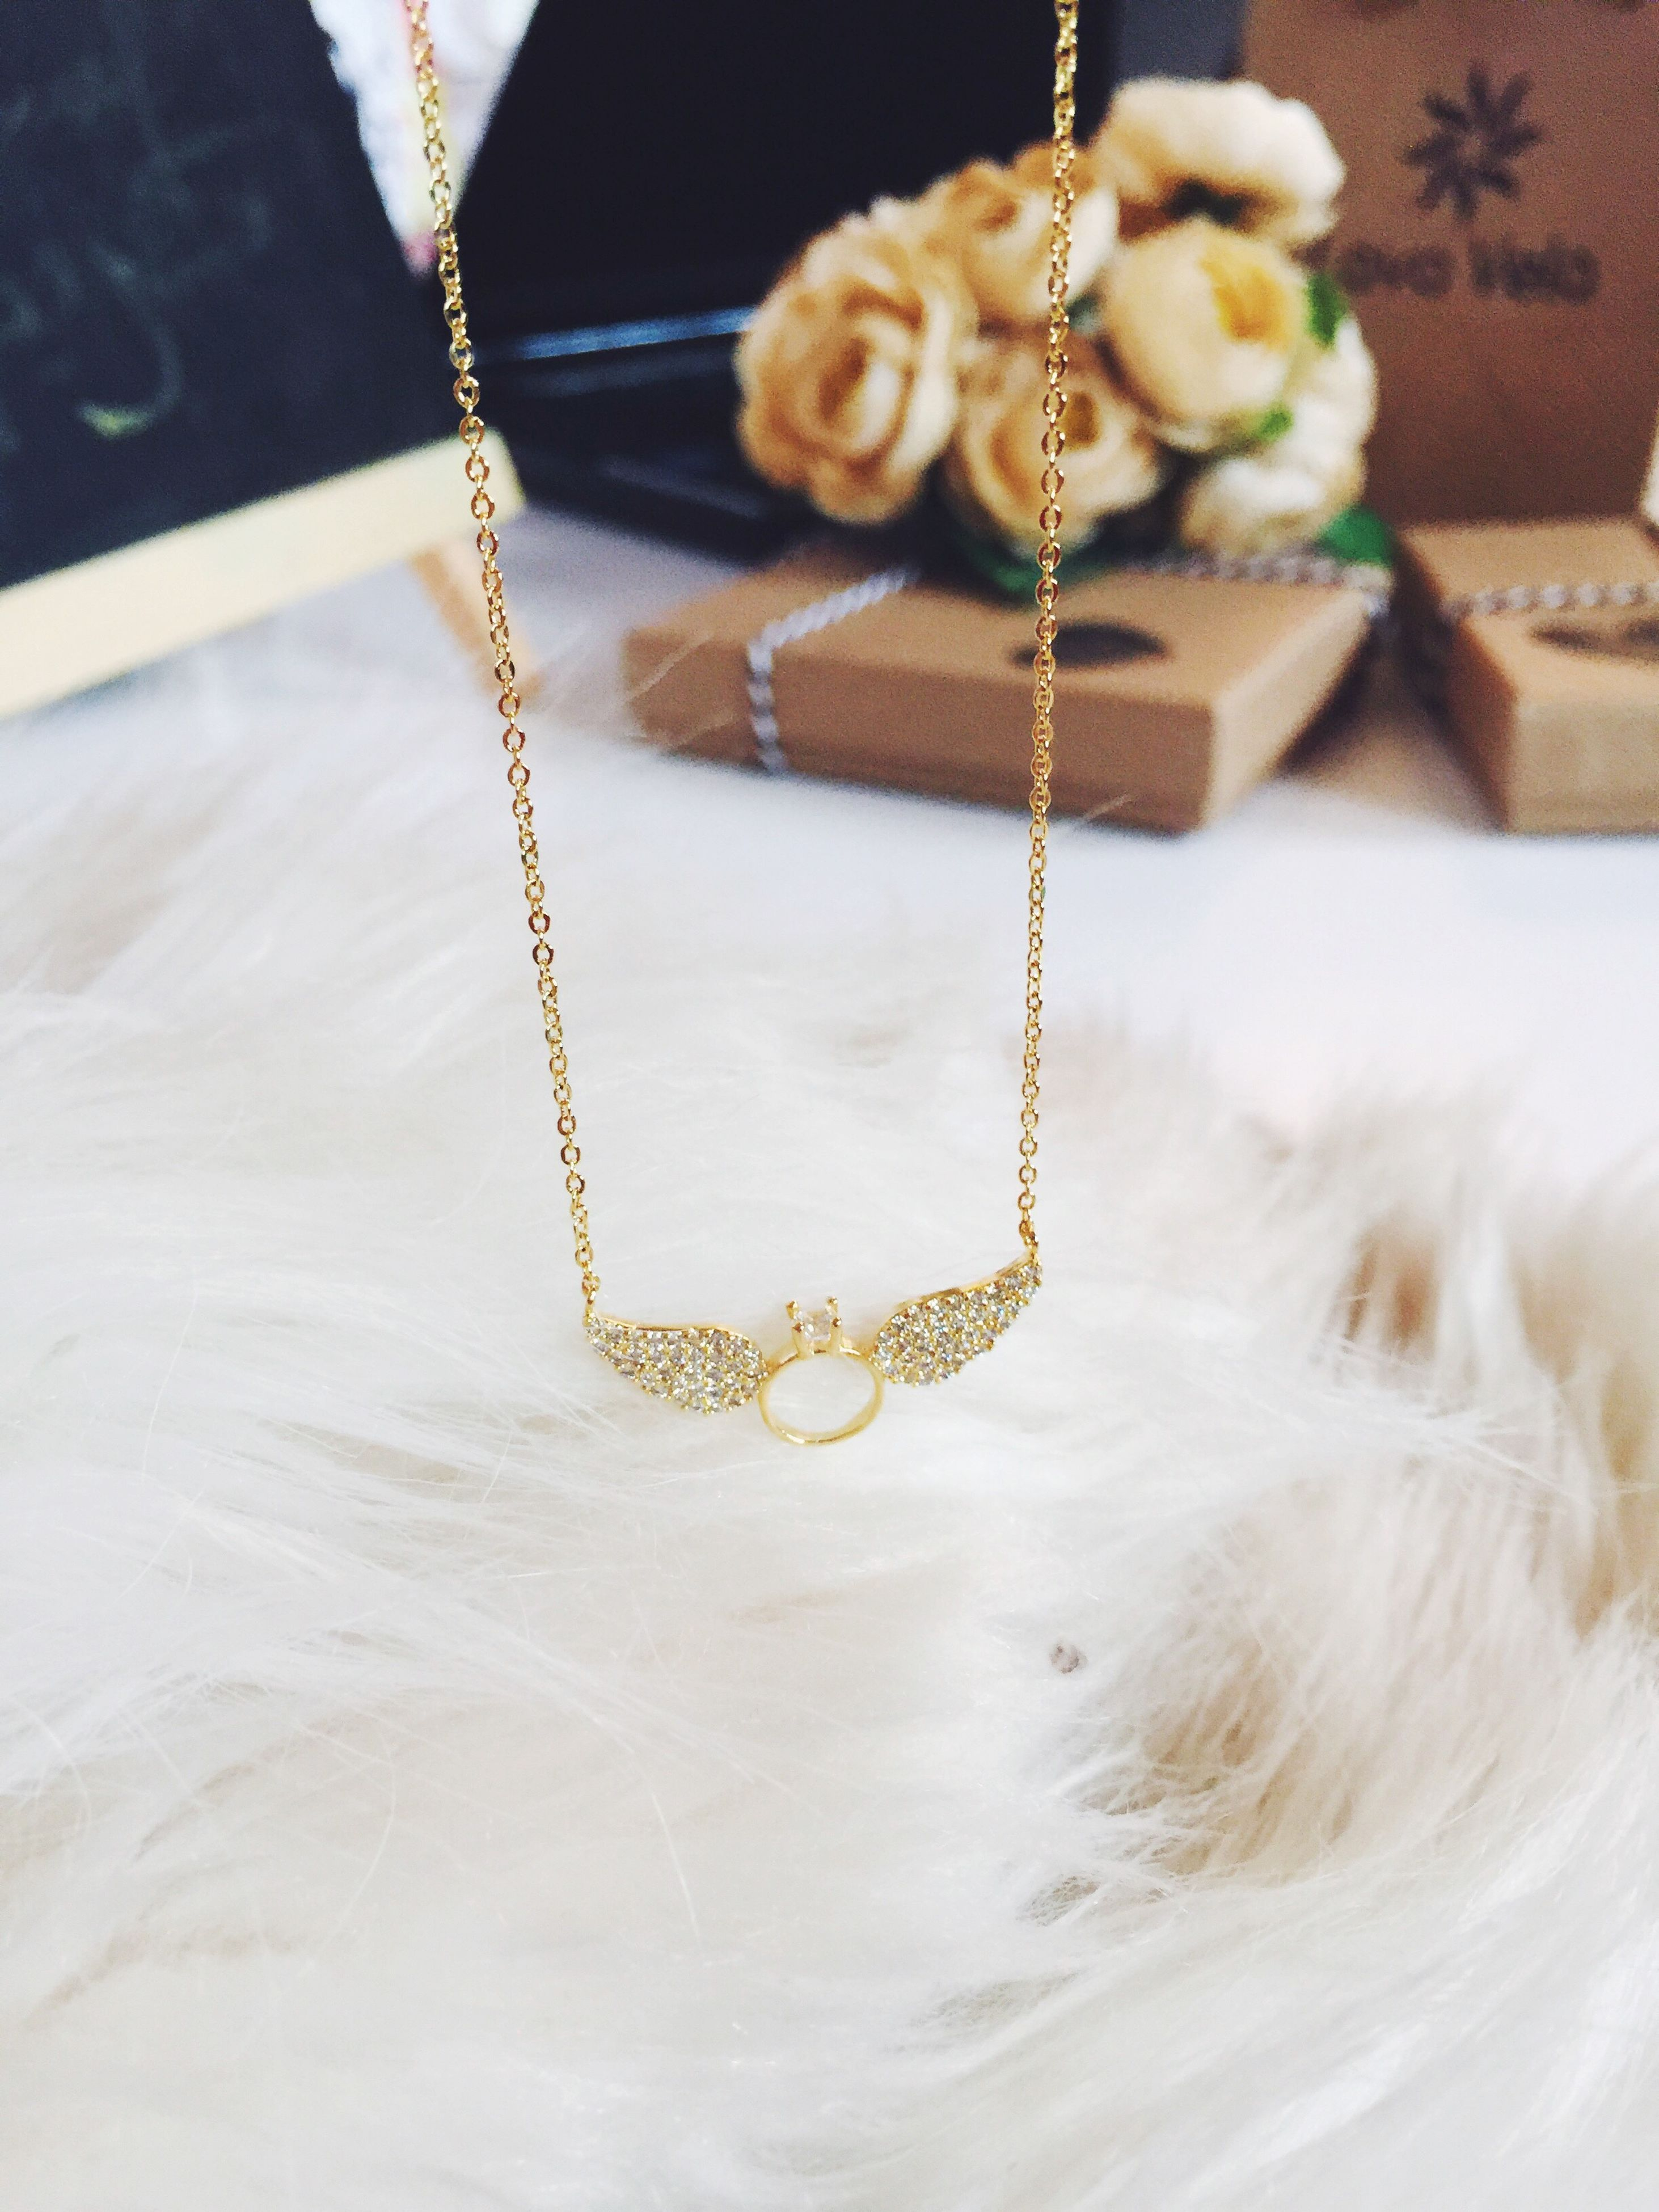 necklace, indoors, jewelry, no people, close-up, gold colored, day